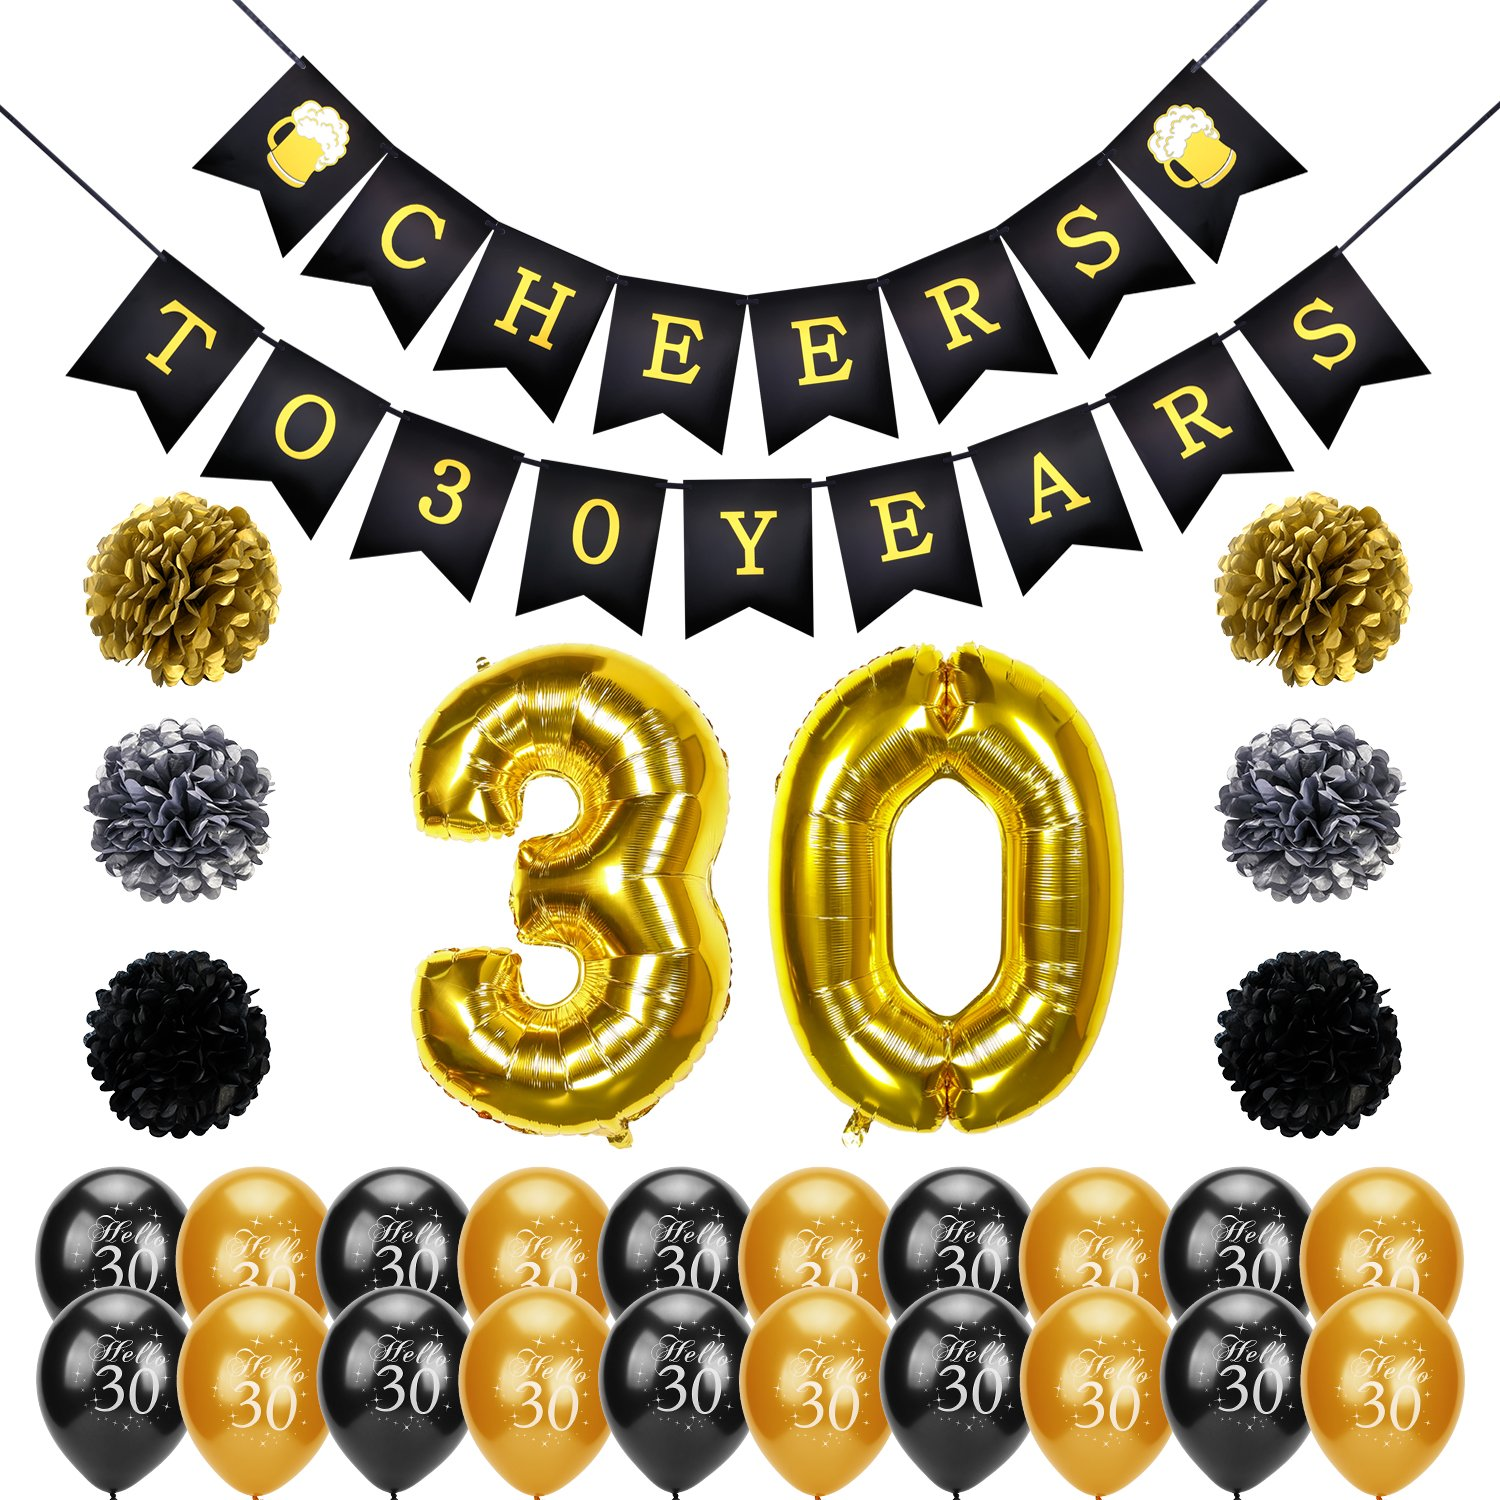 CDM product 30th Birthday decoration, Konsait Cheers to 30 Birthday Banner, Number 30 Foil Balloons Large, Hello 30 Birthday Balloons, Black and Gold, Tissue Paper Pom Poms for 30 Years Old Party Favors Supplies big image